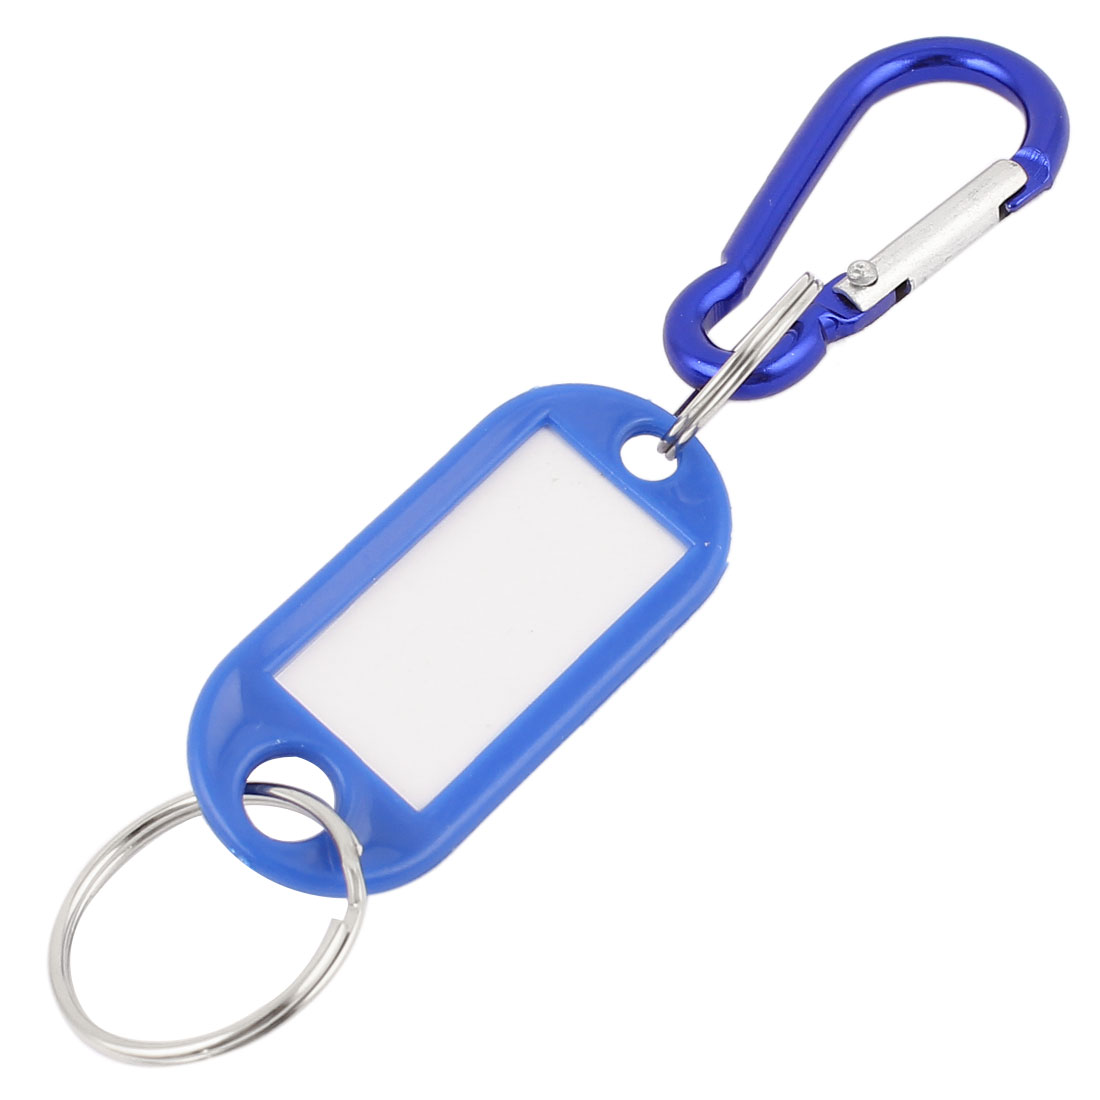 Name ID Tags Label Luggage Suitcase Bag Key Ring Carabiner Hook Blue